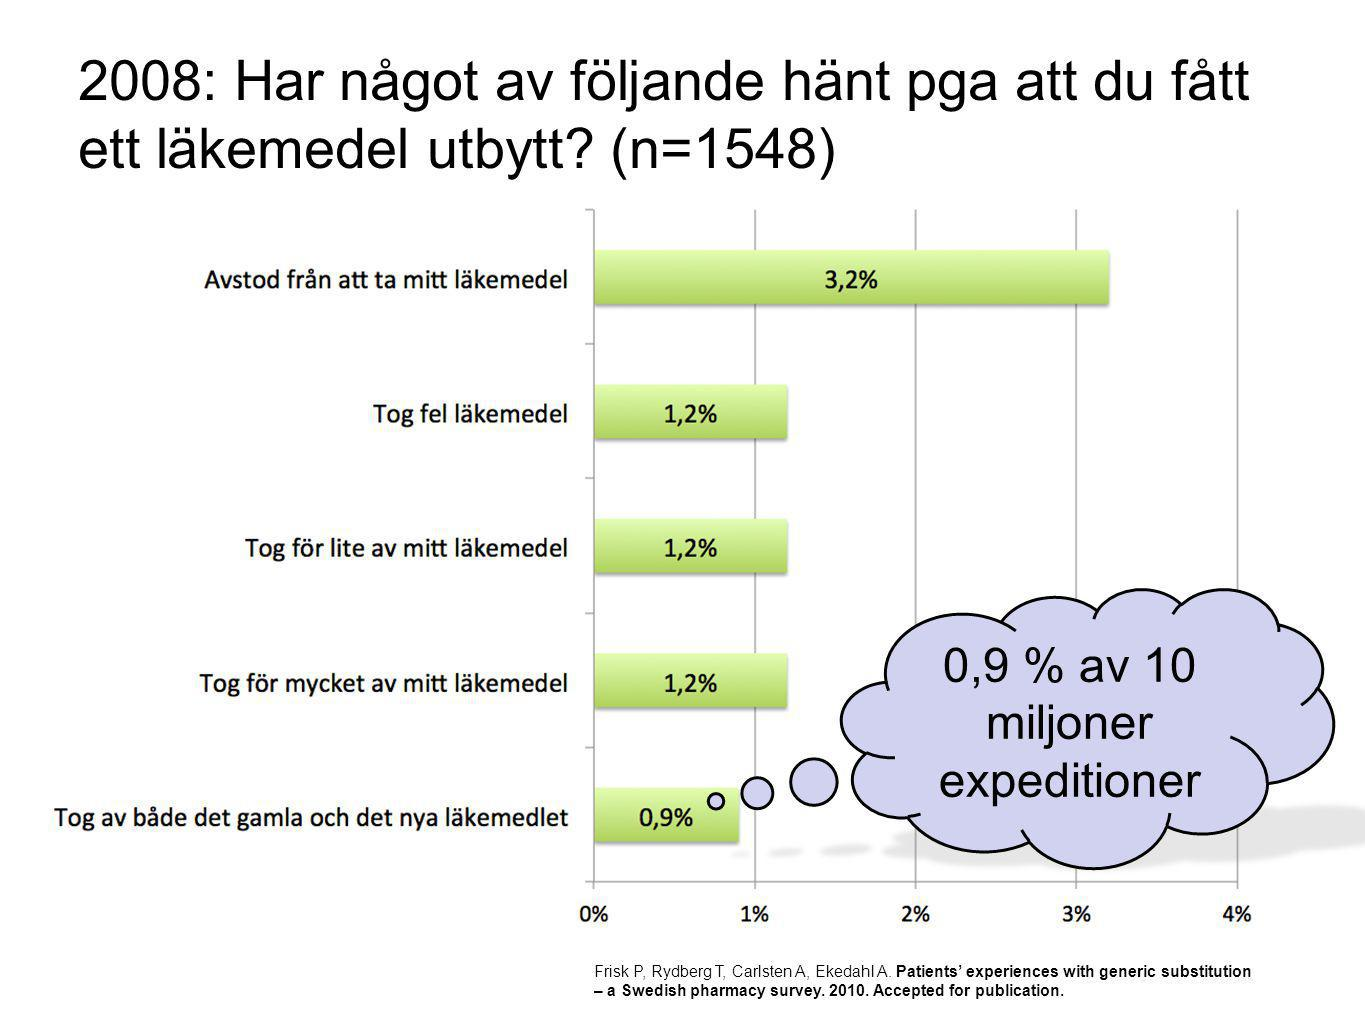 0,9 % av 10 miljoner expeditioner